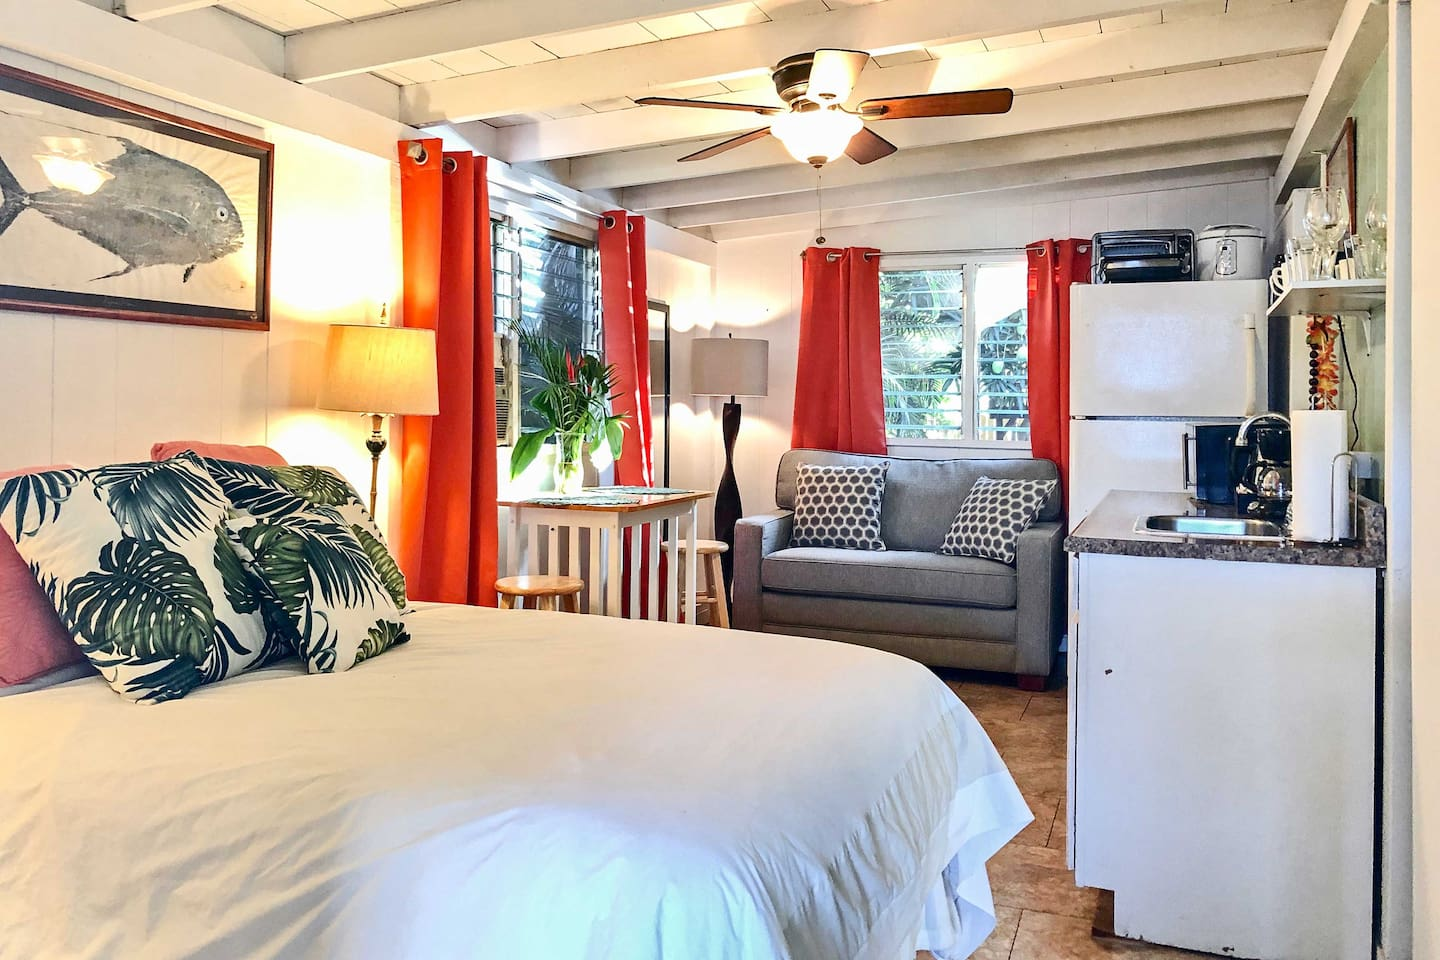 Your personal paradise awaits at this vacation rental studio in Waialua.